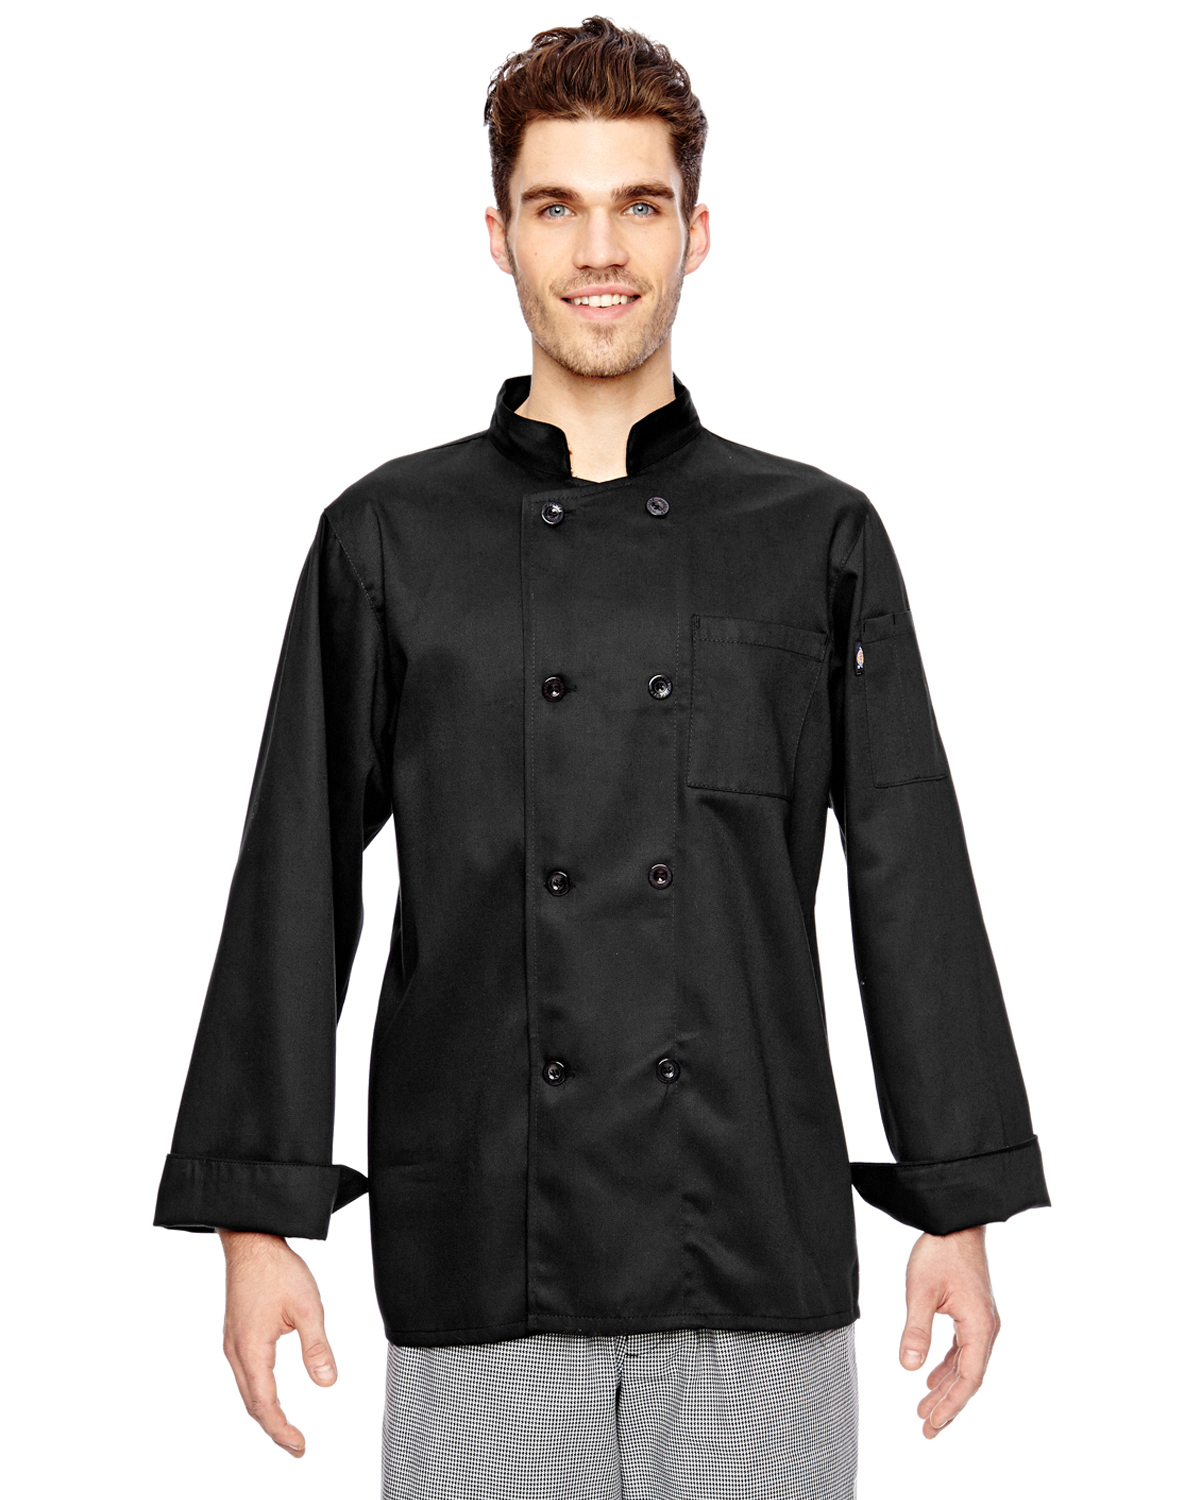 Dickies DC118 - 7 oz. Eight Button Chef Coat